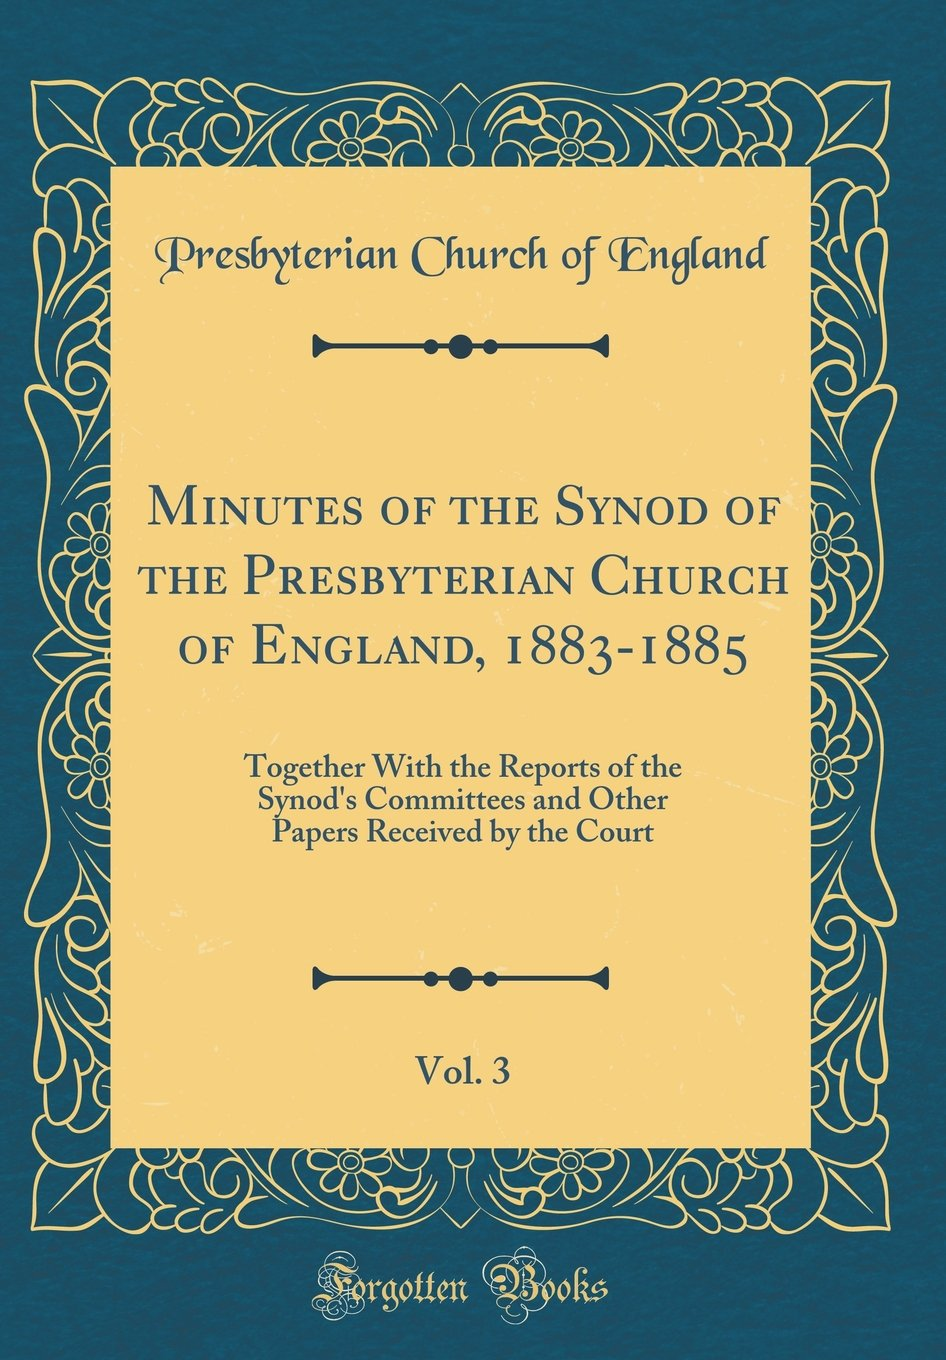 Read Online Minutes of the Synod of the Presbyterian Church of England, 1883-1885, Vol. 3: Together with the Reports of the Synod's Committees and Other Papers Received by the Court (Classic Reprint) PDF